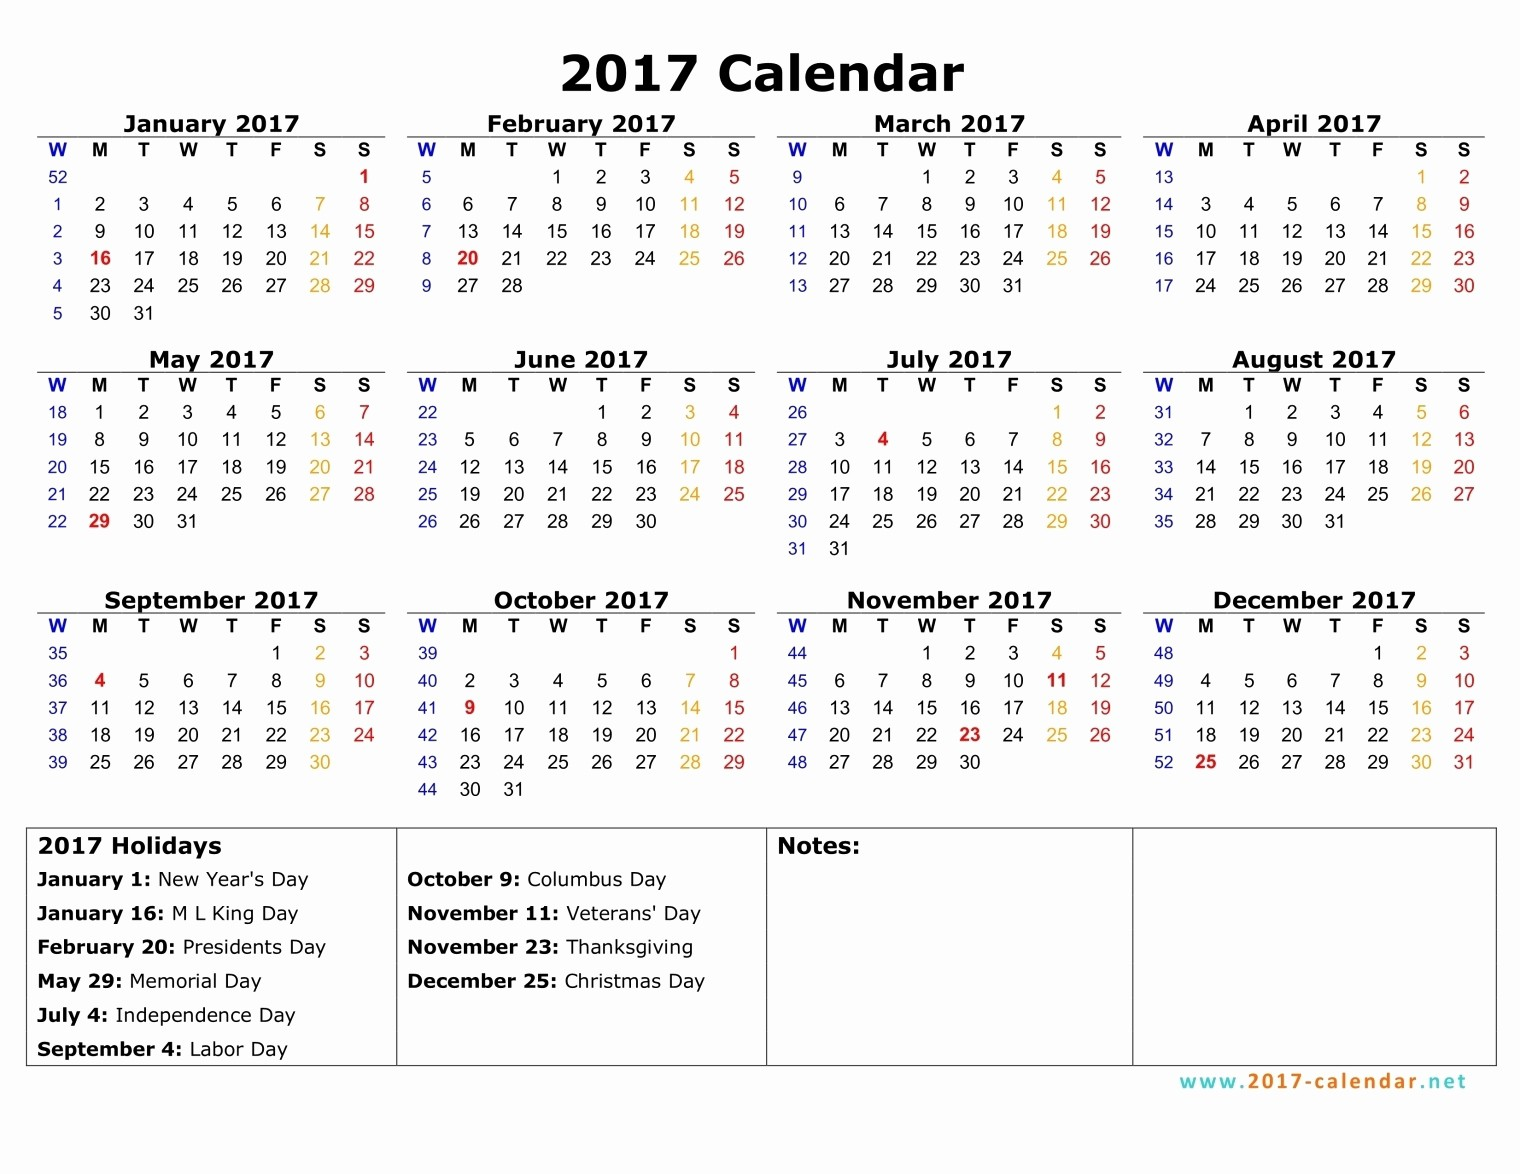 Calendar 2017 Monday to Sunday Lovely 2017 Calendar Monday to Friday